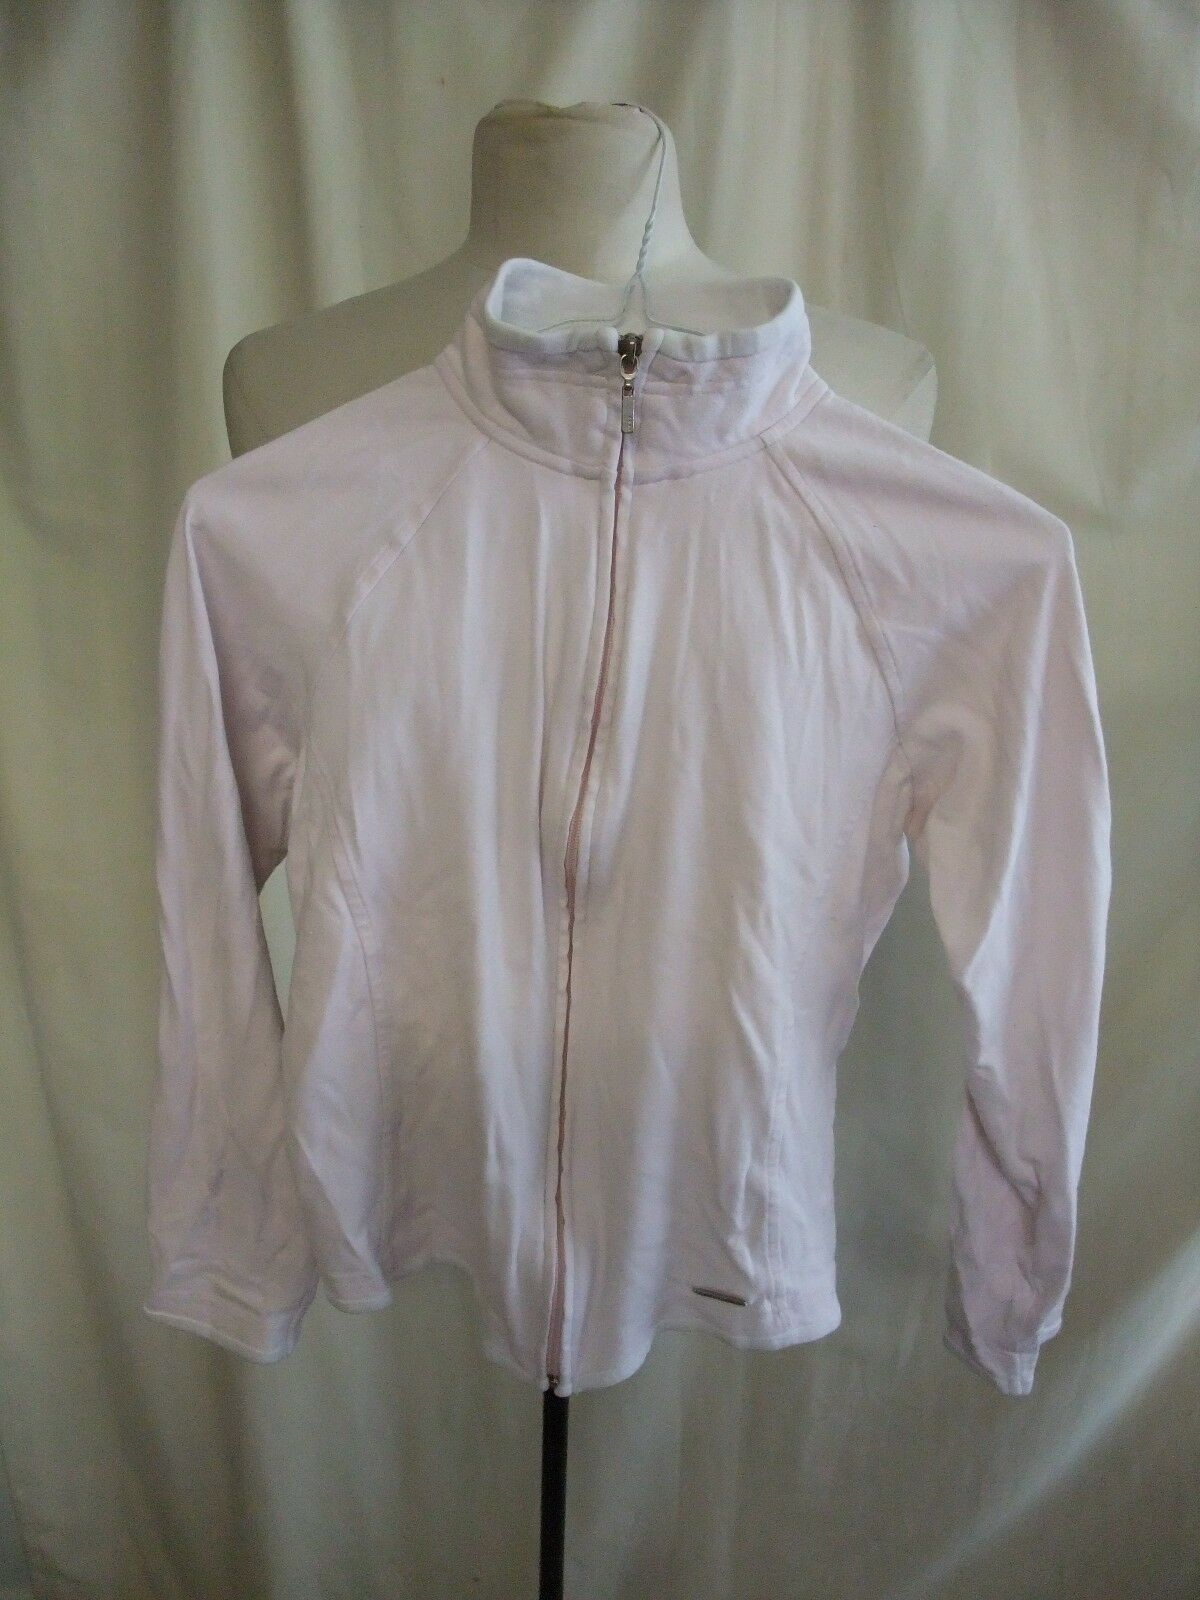 Ladies Sports Jacket NEXT UK 10, pale pink cotton, zip up, used not perfect 1873